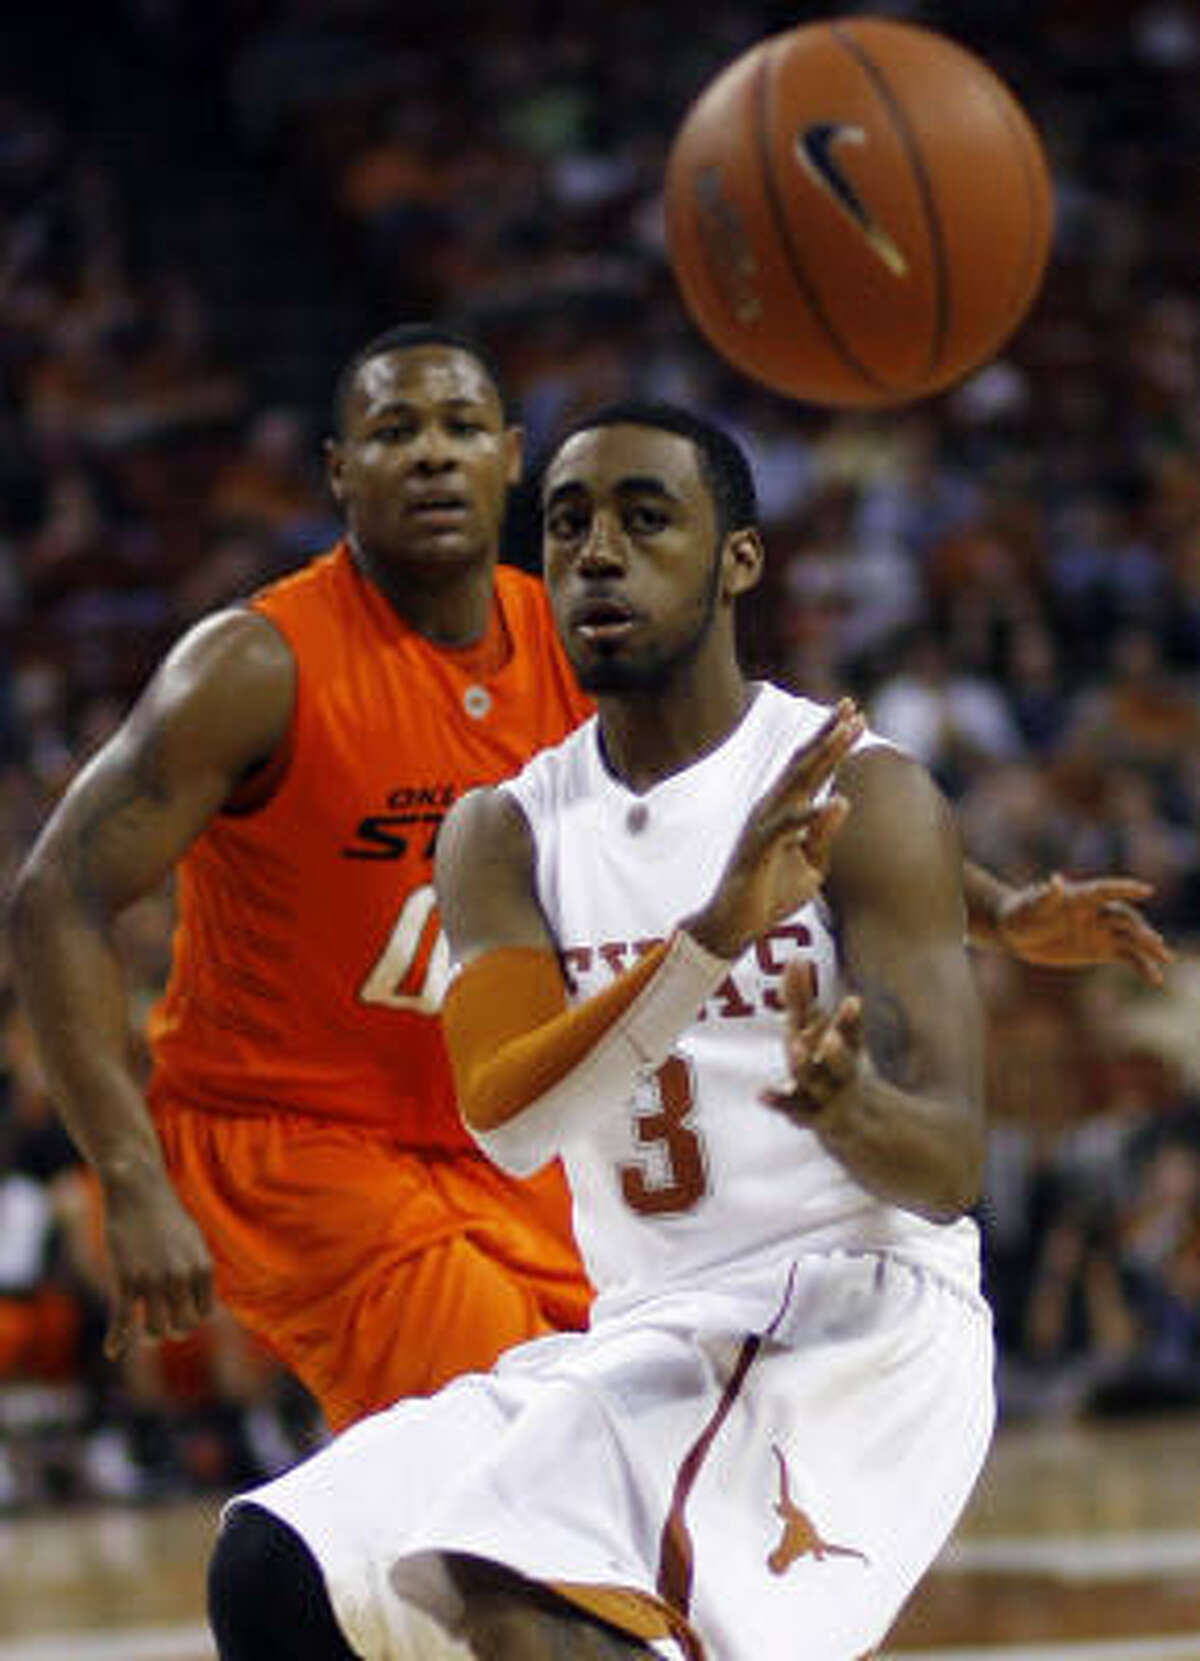 Texas guard A.J. Abrams passes the ball during the second half against Oklahoma State on Tuesday in Austin. Abrams' team-high 20 total points helped Texas to a 99-74 victory.